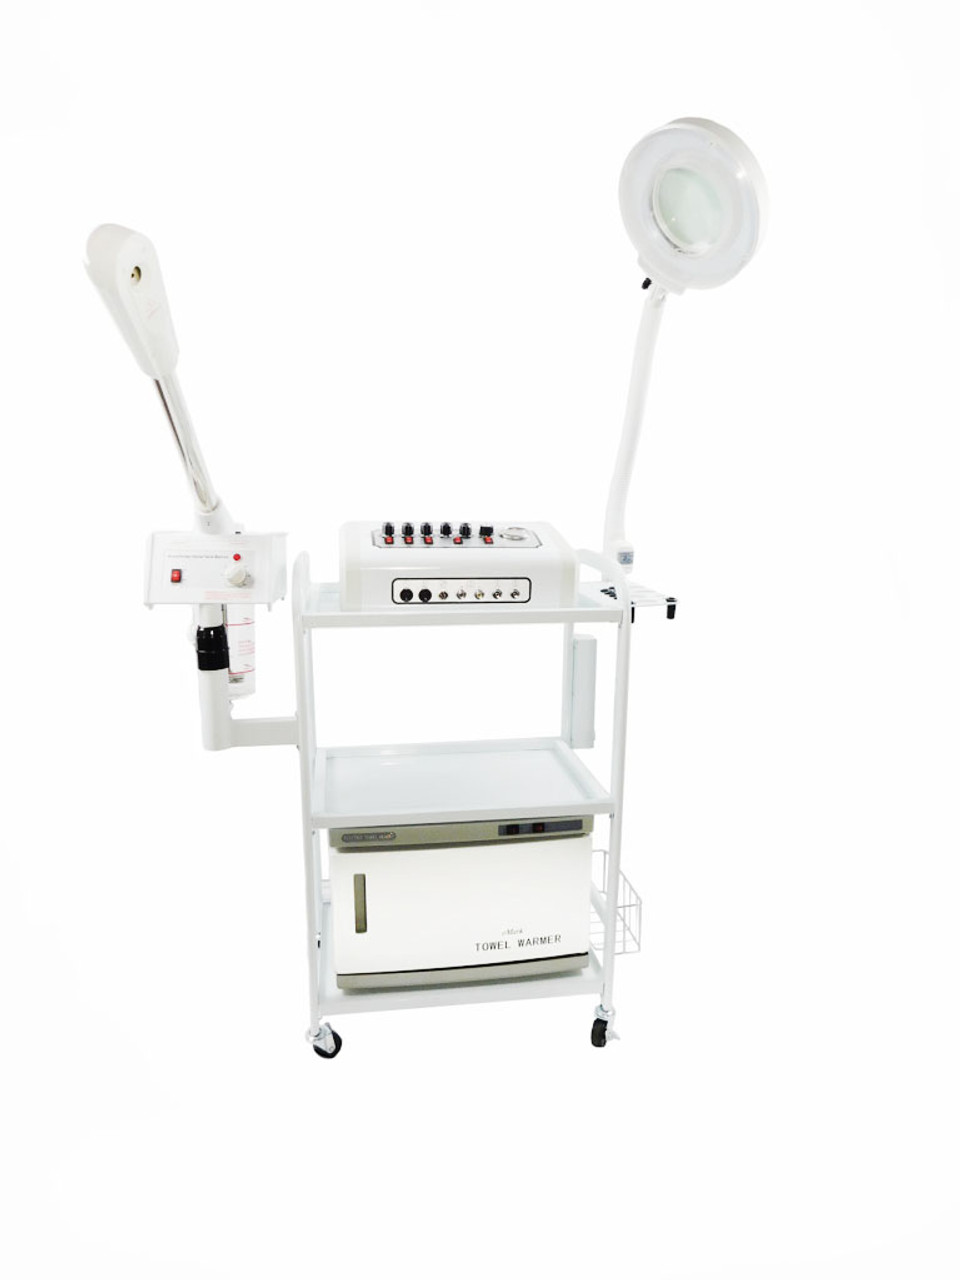 Aromatherapy Glass Jar Steamer 13 in 1 Skincare All in 1 Microdermabrasion Facial Machine TLC-3027CFM